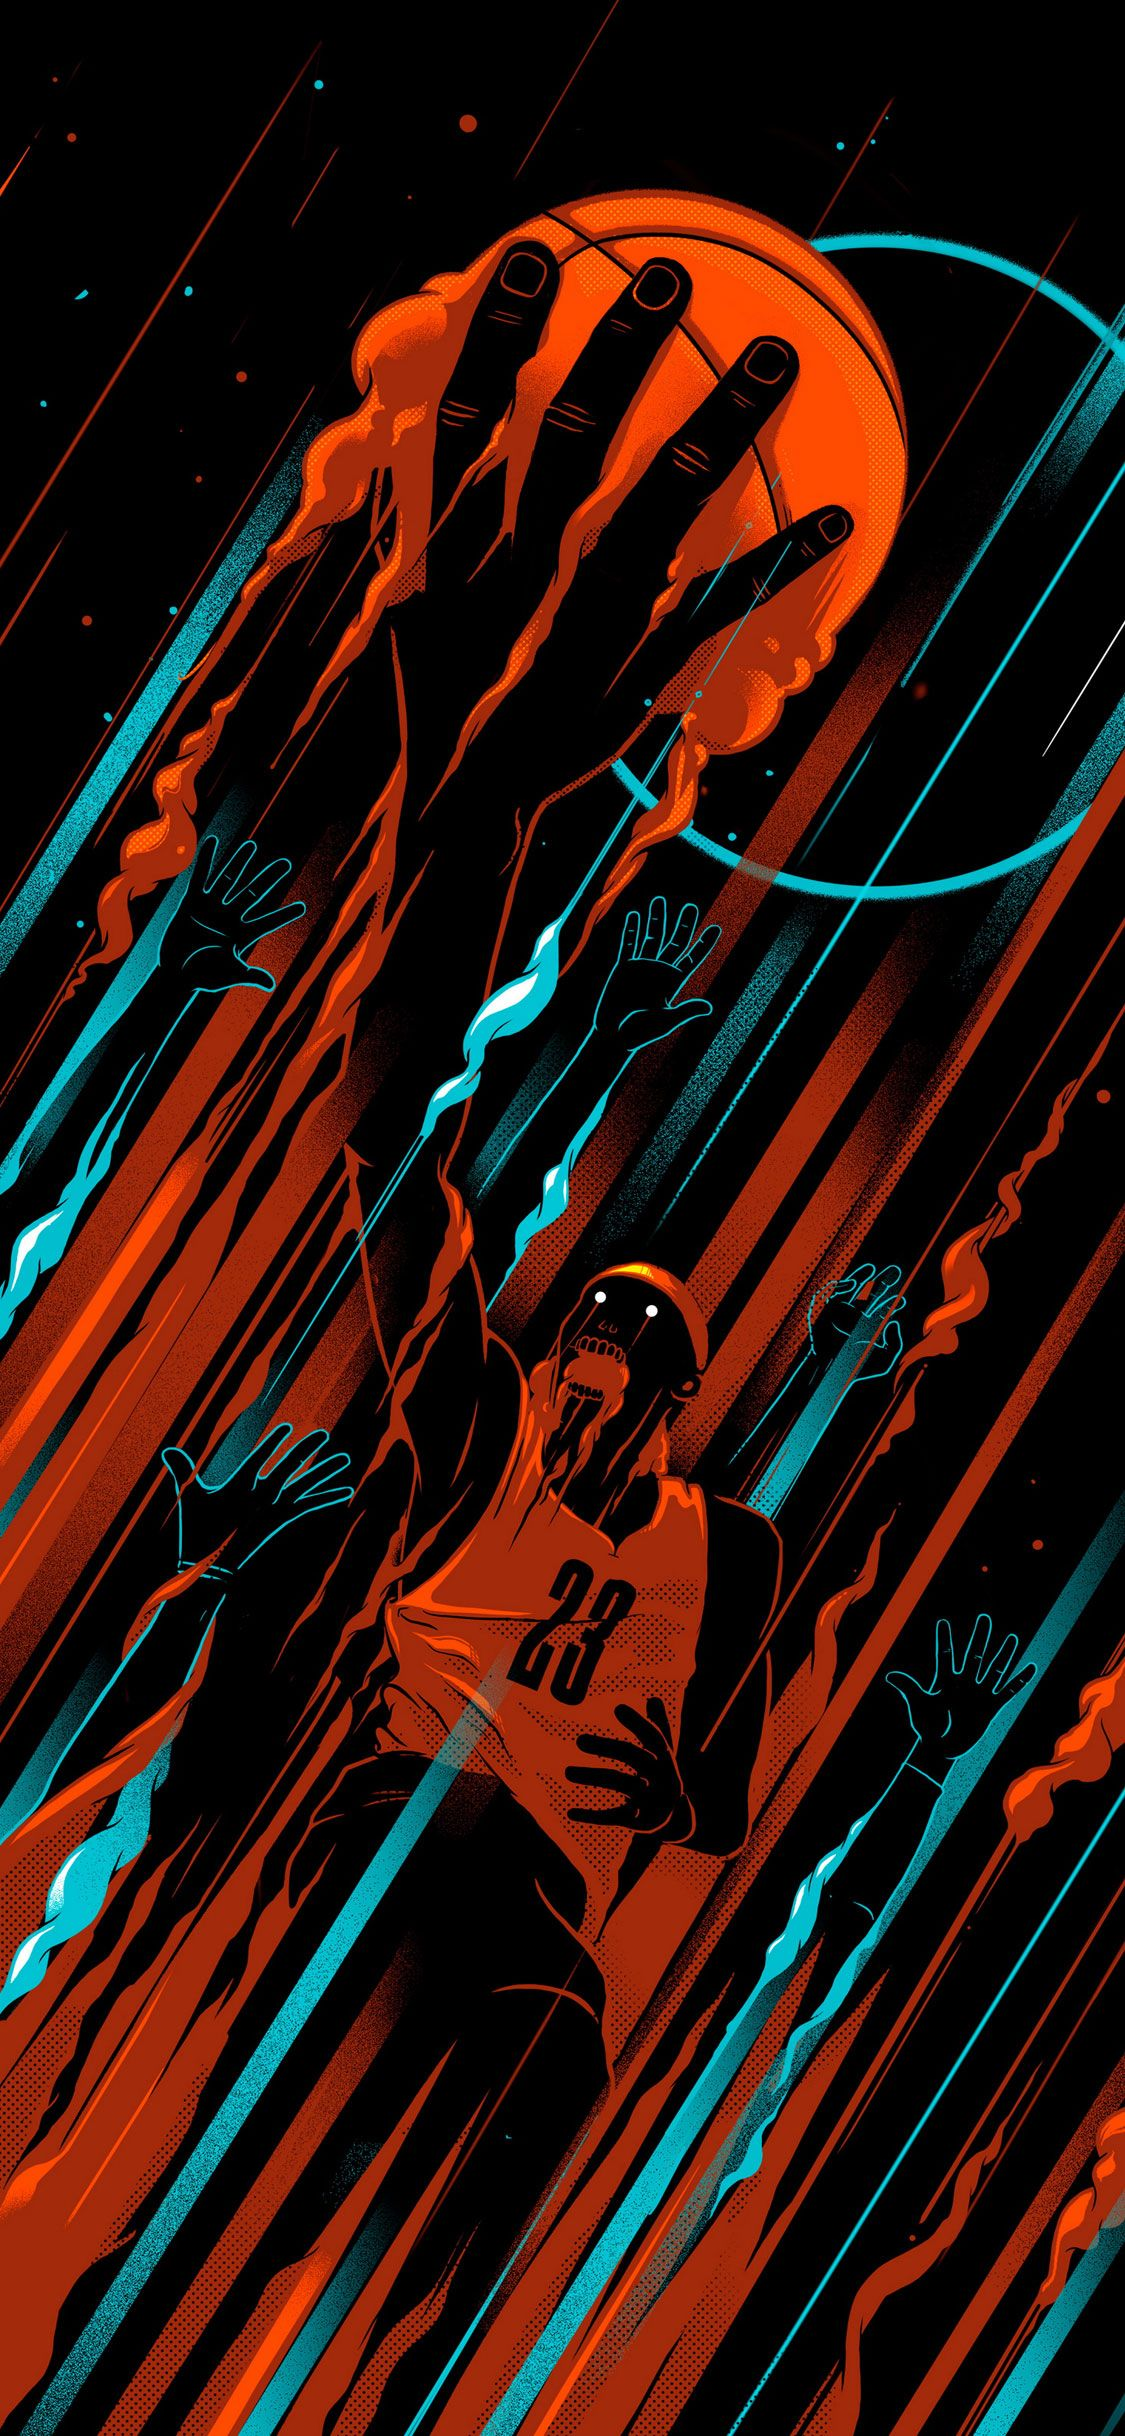 Basketball iPhone X Black Wallpaper Fond d'écran sympa